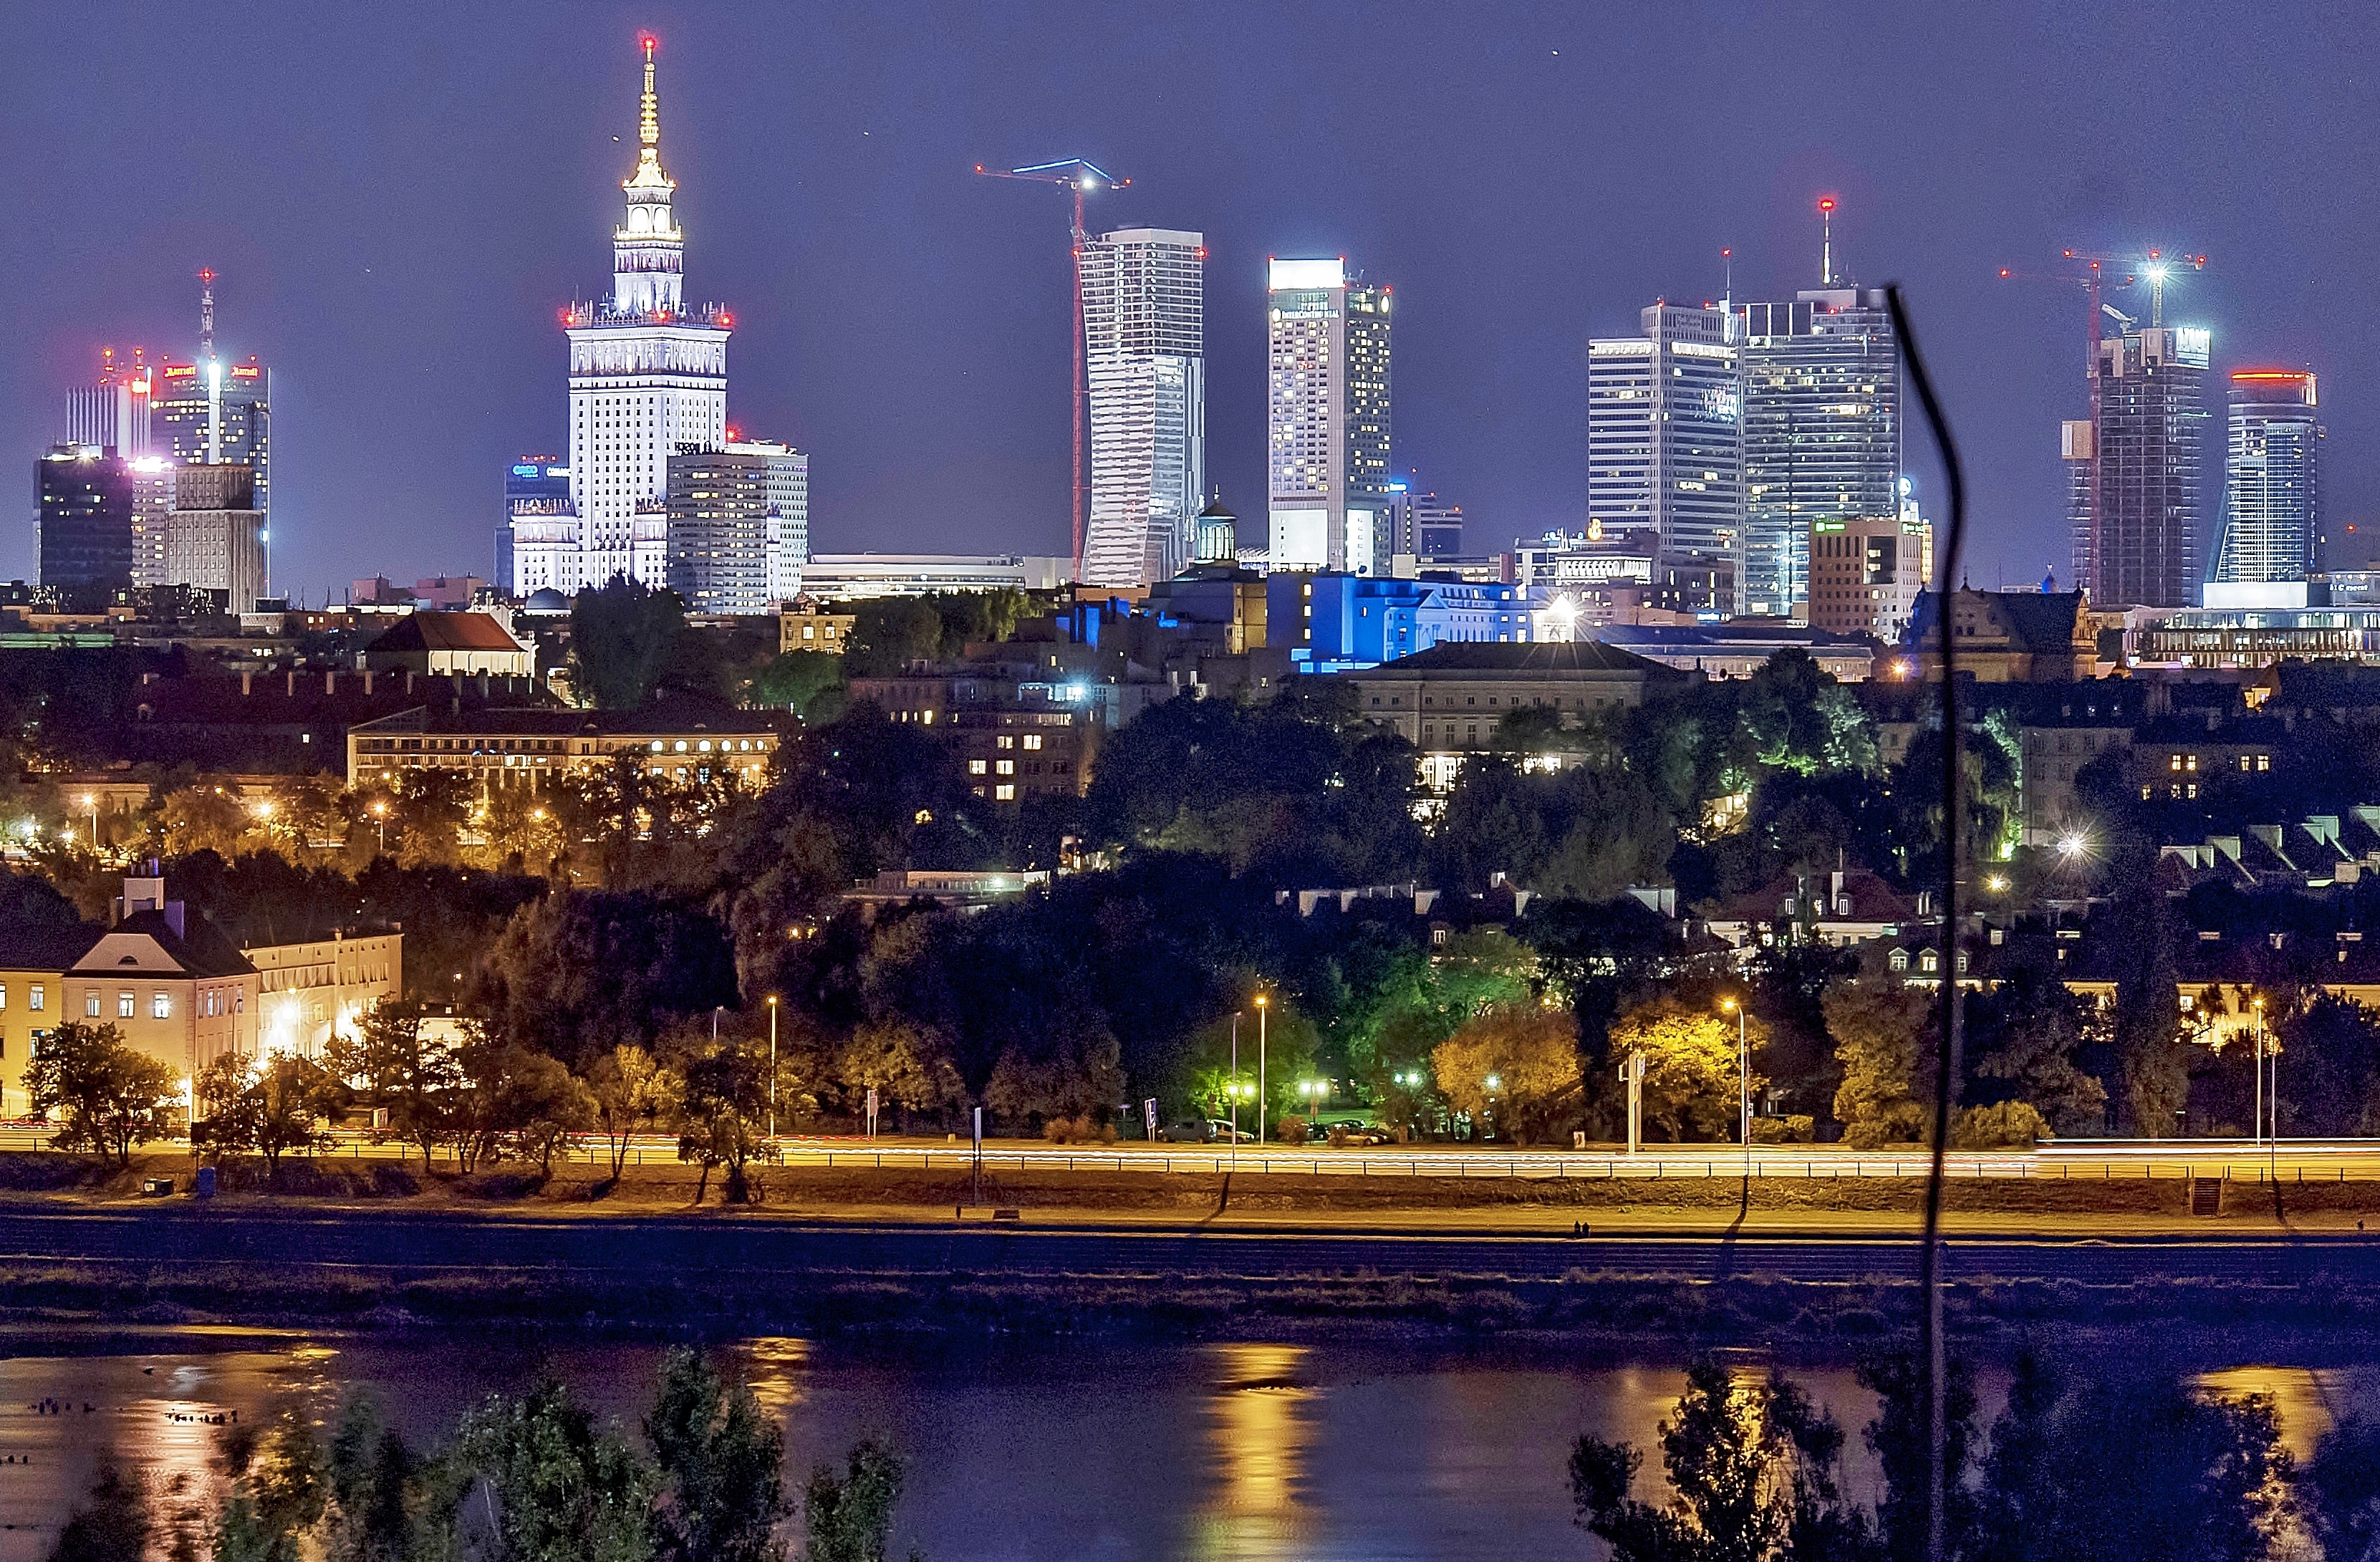 https://upload.wikimedia.org/wikipedia/commons/0/03/Panorama_of_Warsaw_by_night_%28cropped%29.jpg